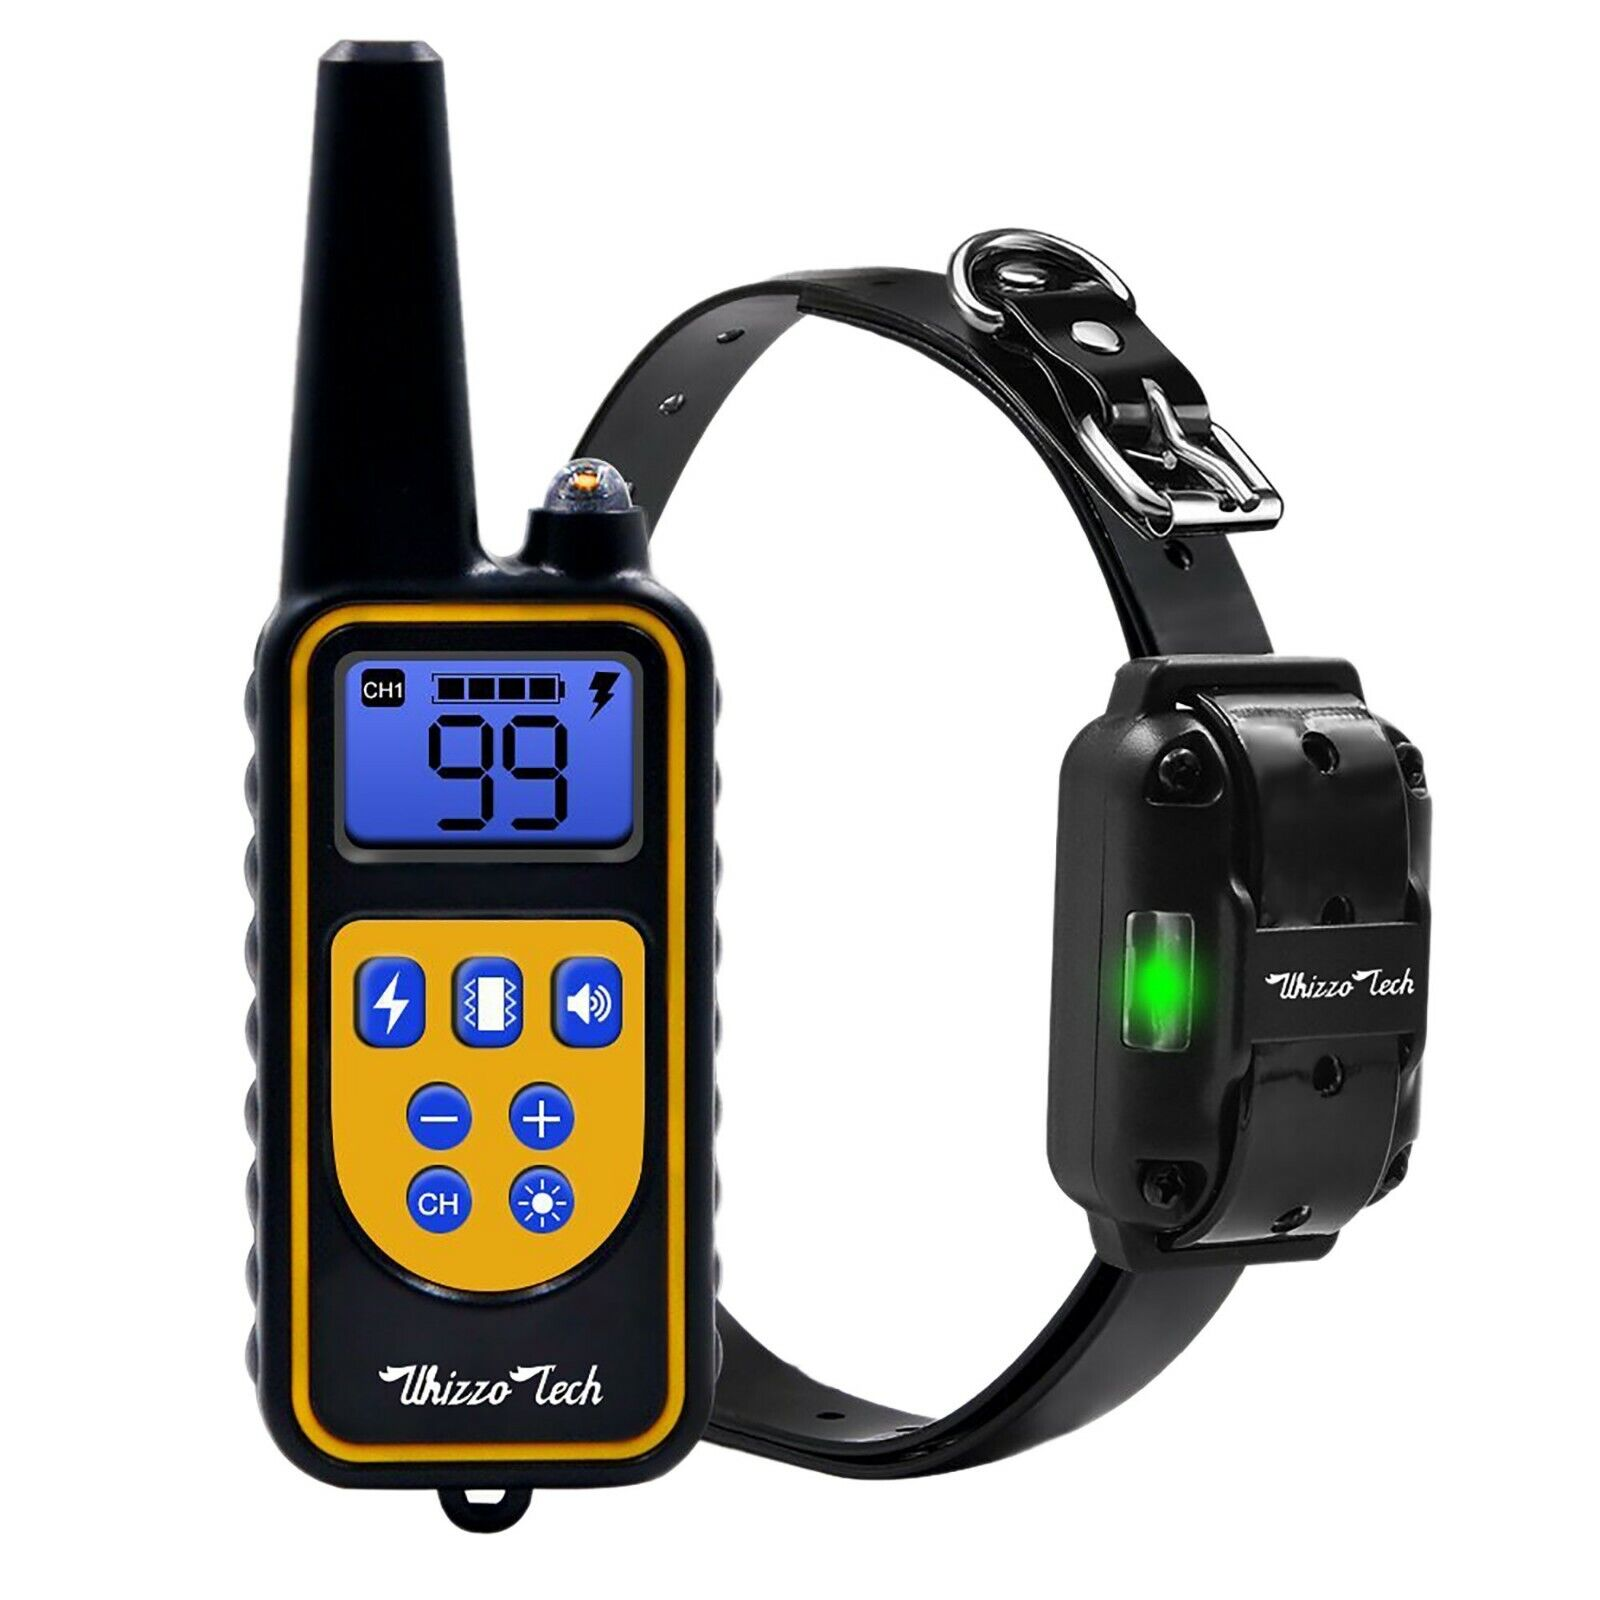 Dog Shock Training Collar Rechargeable Remote Control Waterproof IP67 875 Yards Bark Collars